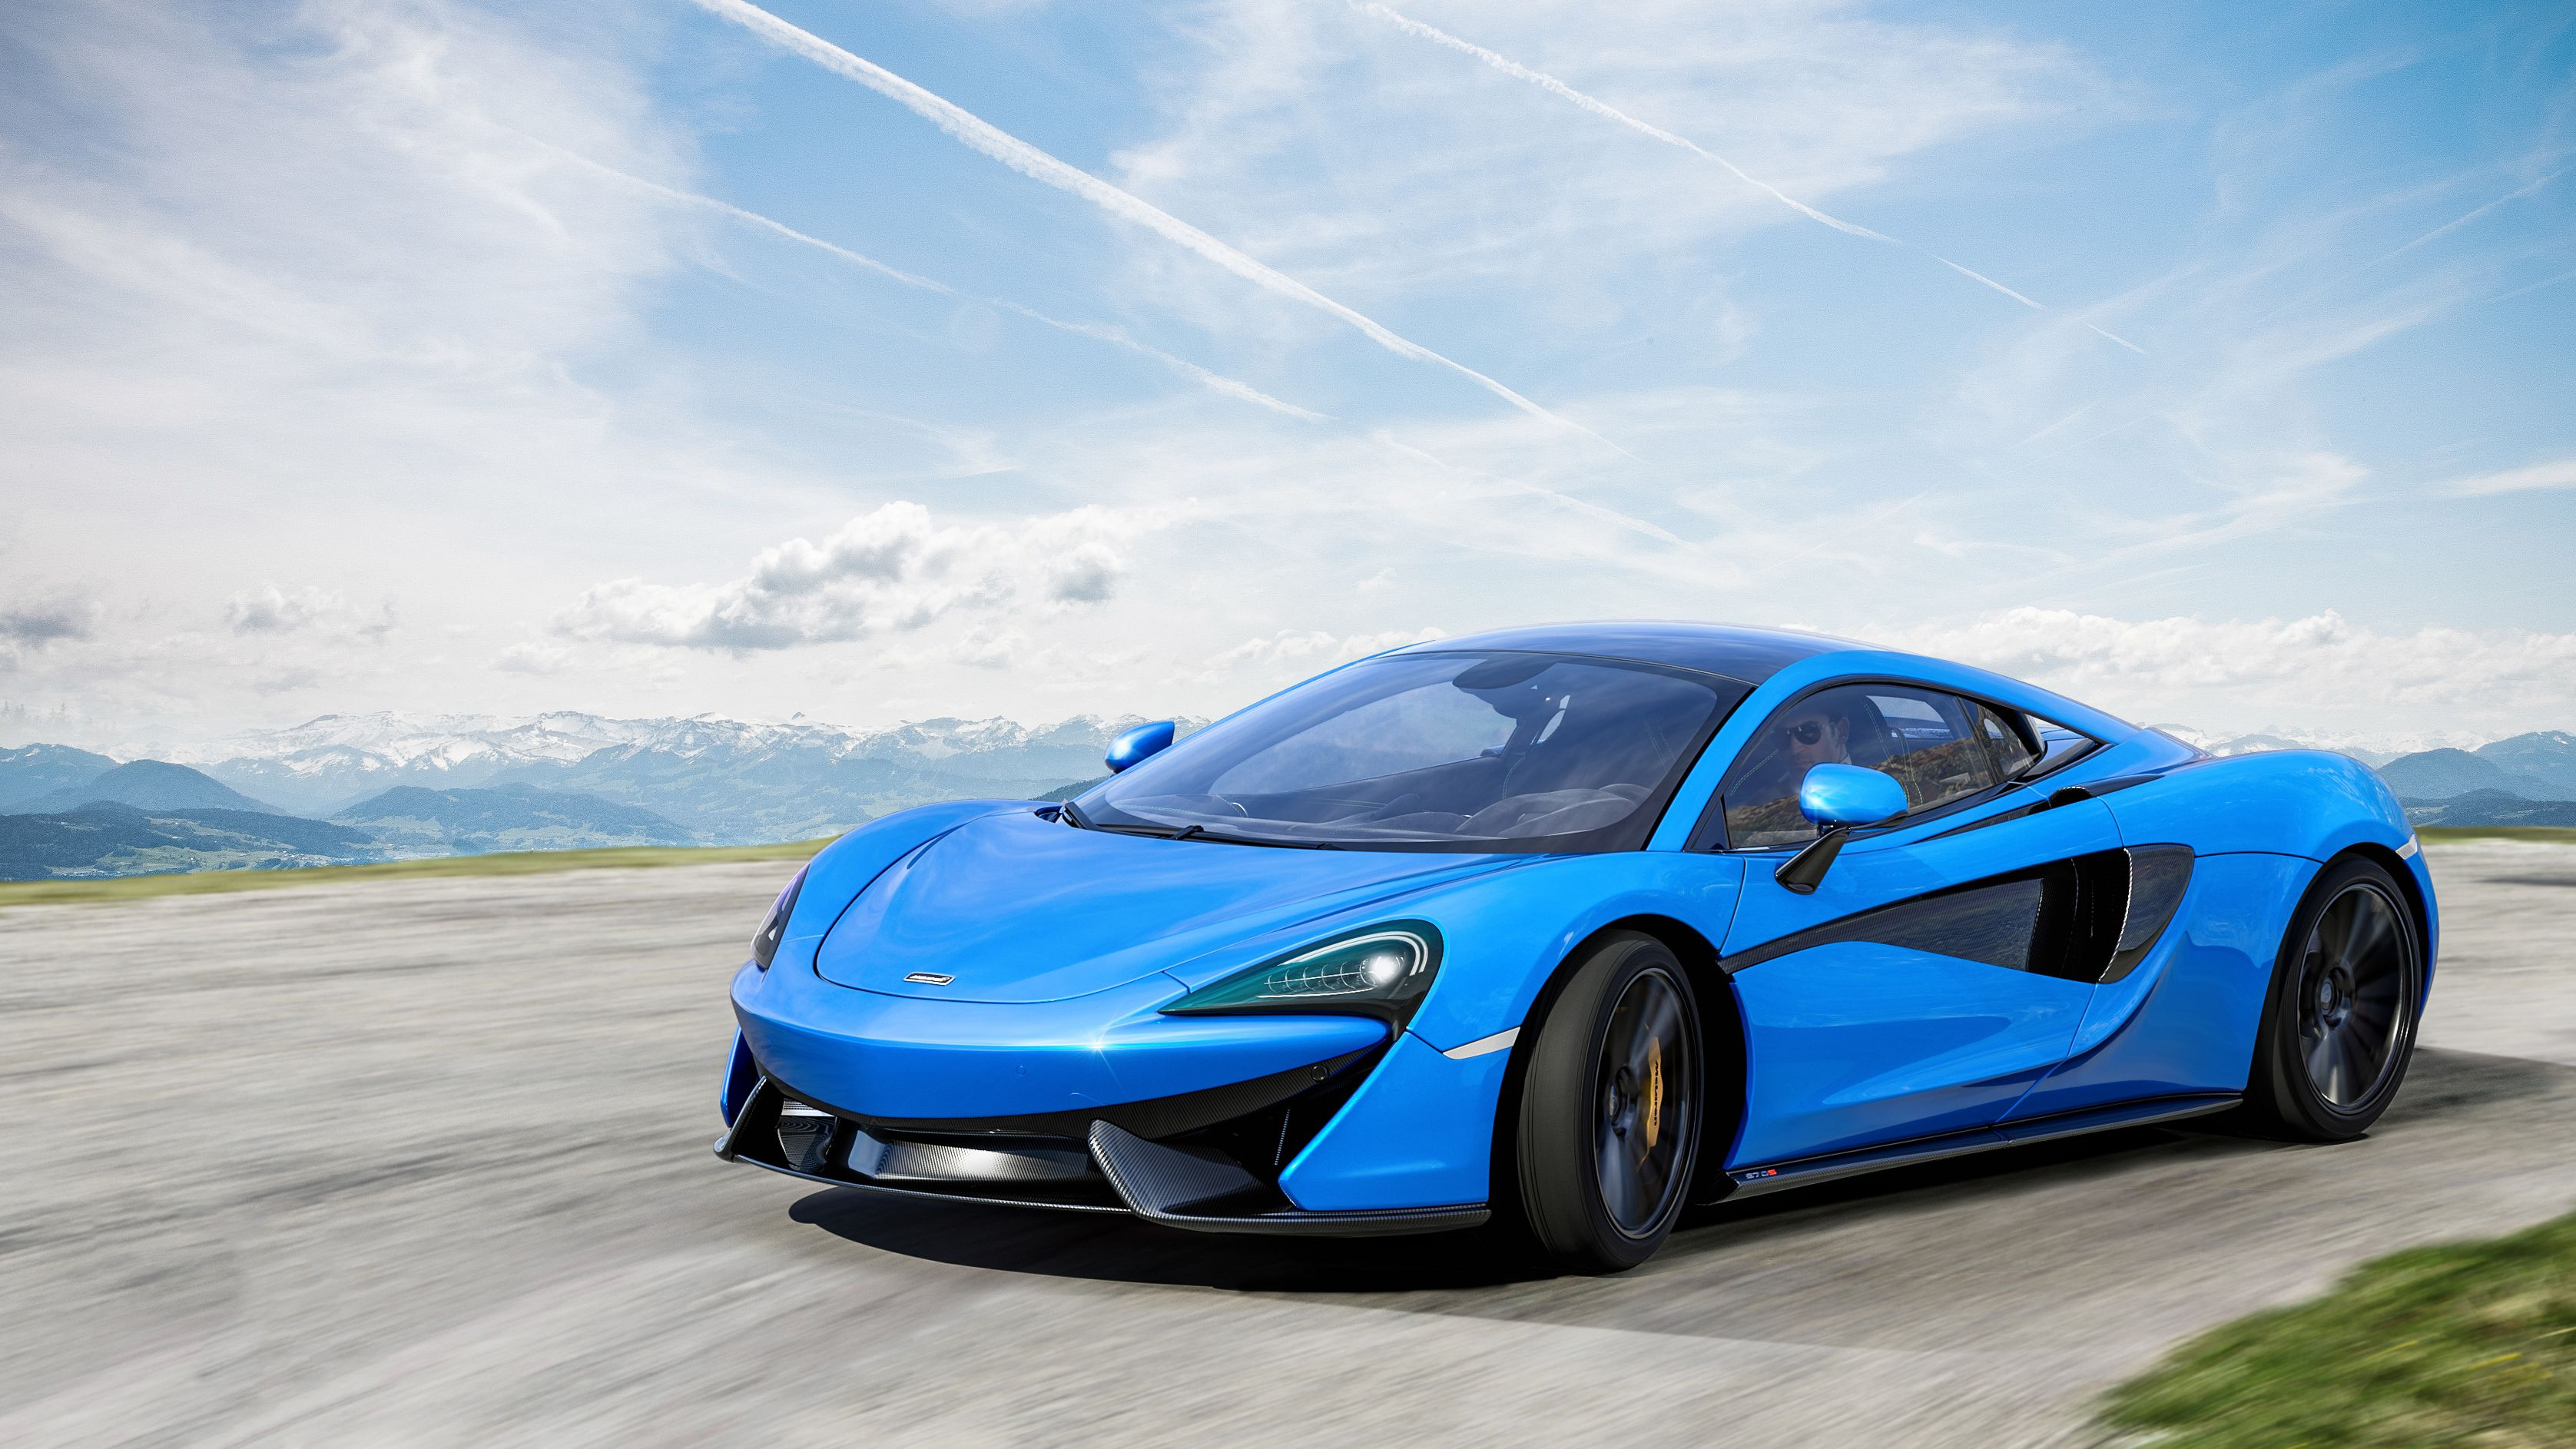 Blue Mclaren Wallpapers Top Free Blue Mclaren Backgrounds Wallpaperaccess